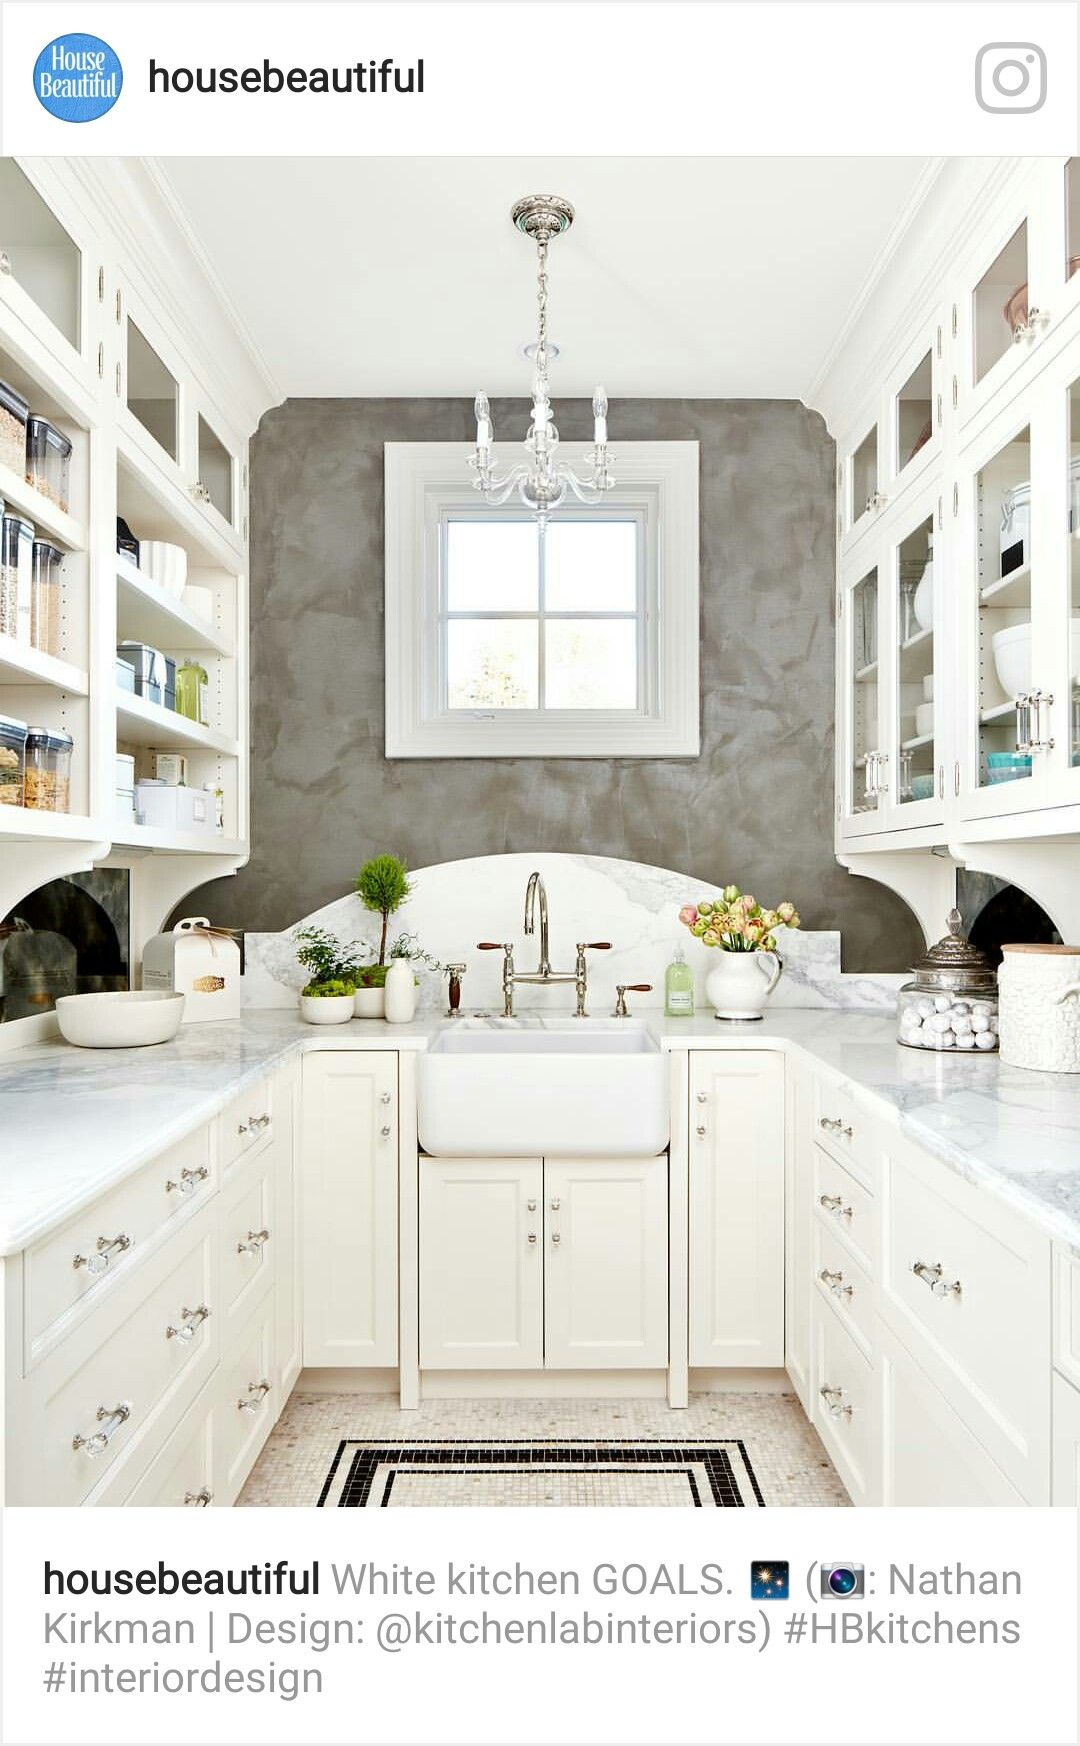 clean look for a kitchen house beautiful kitchens home depot kitchen home on kitchen cabinets no handles id=48305